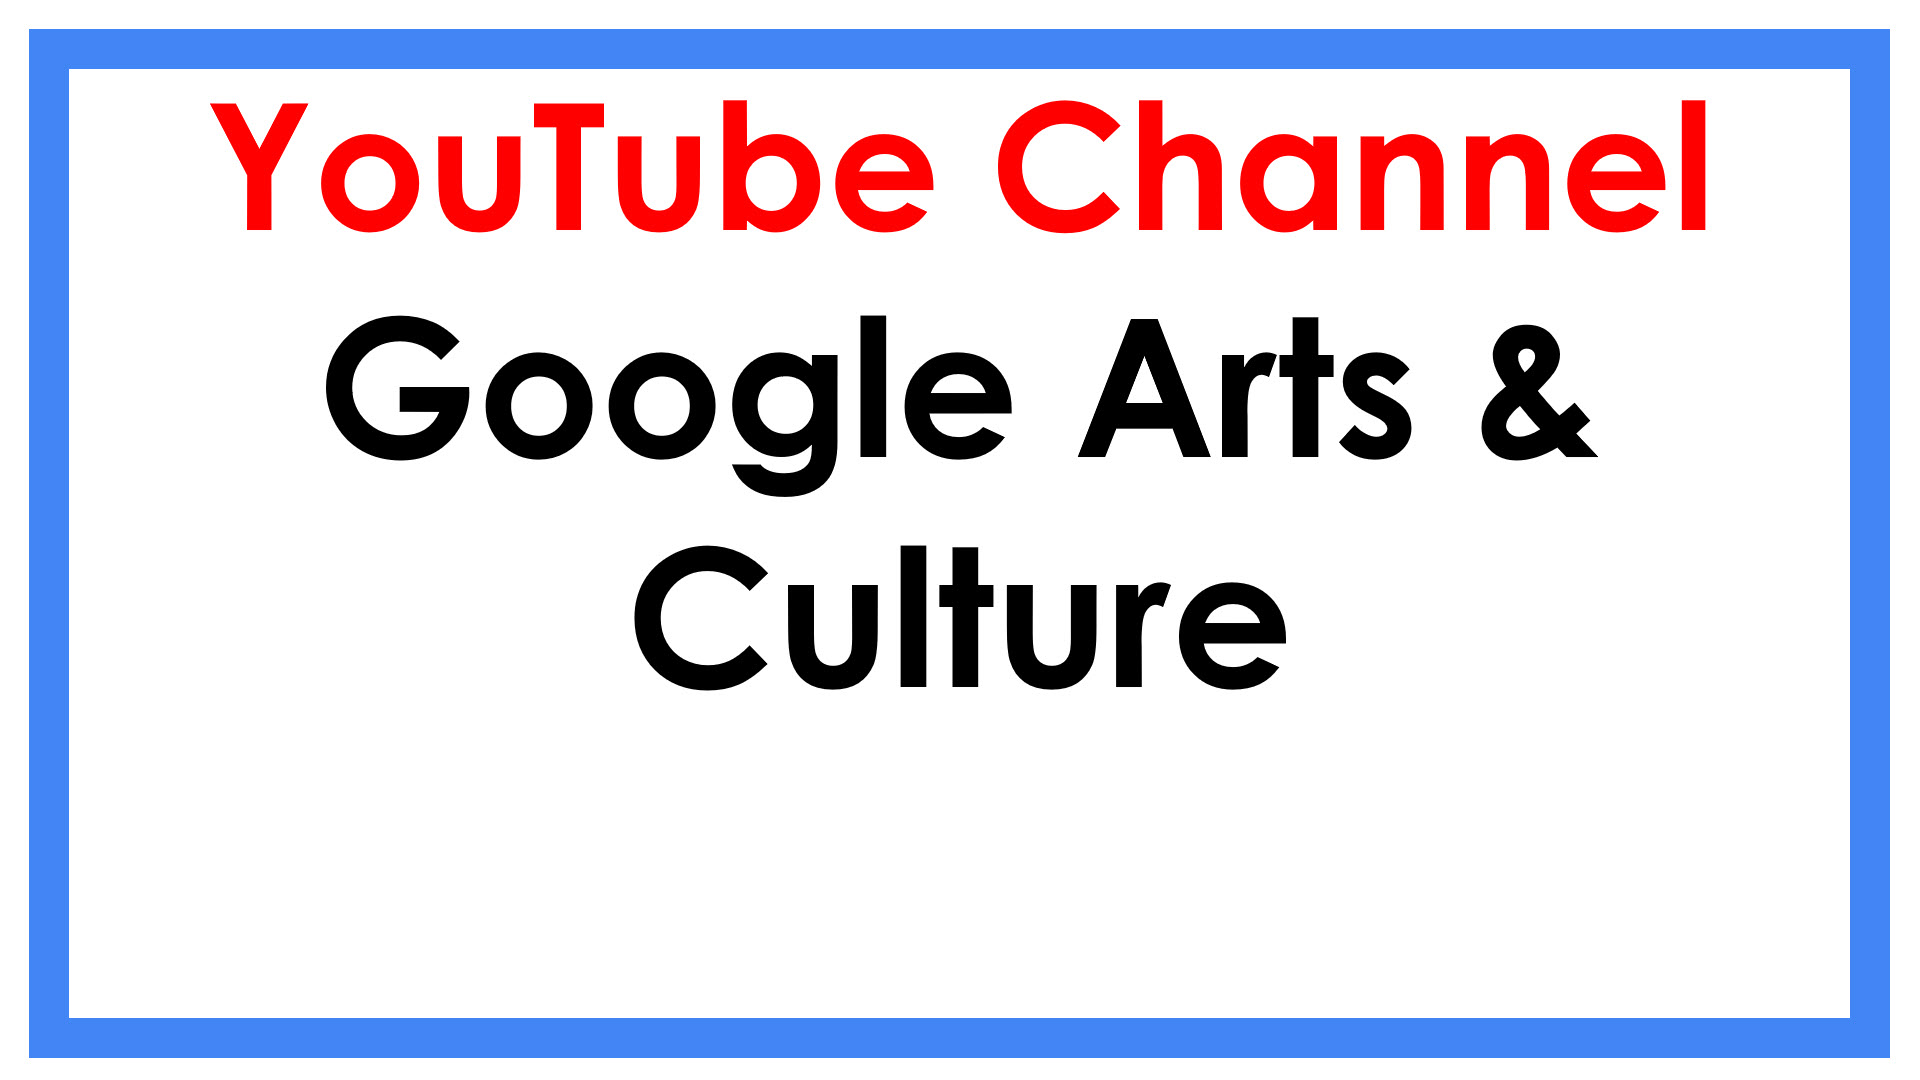 Youtube Channel Google Arts & Culture